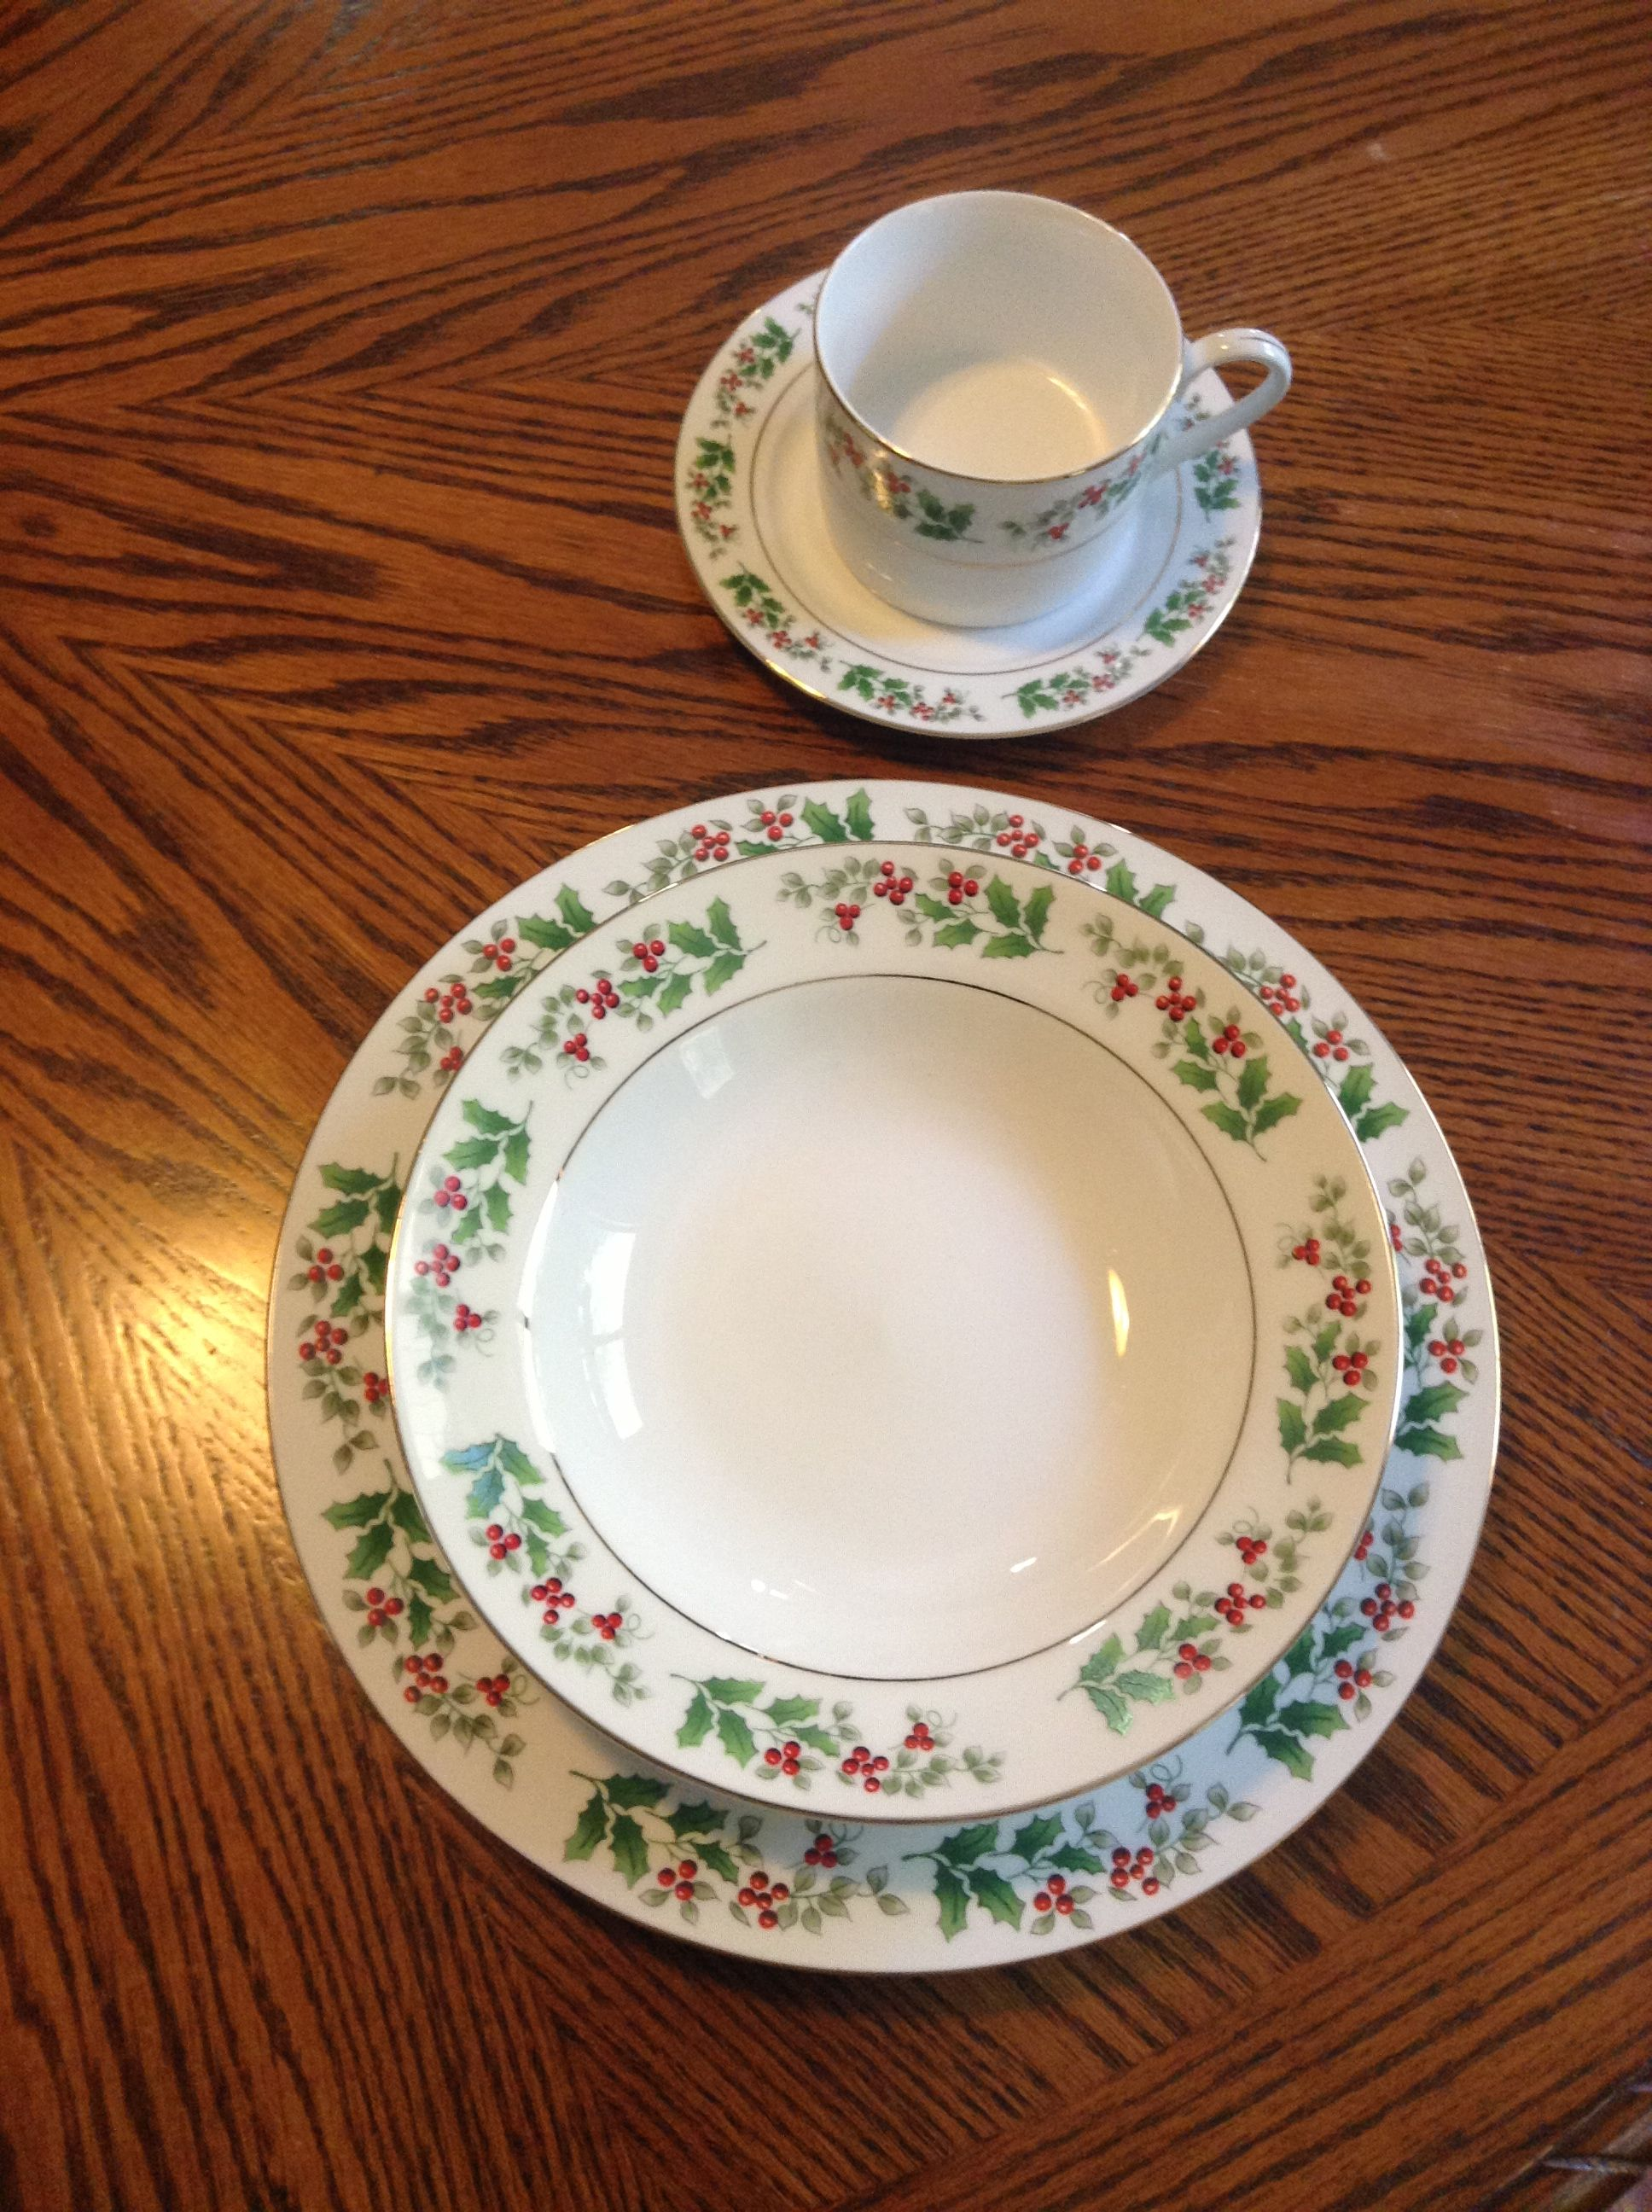 My Christmas China, holly berry design by Gibson | My obsession with ...